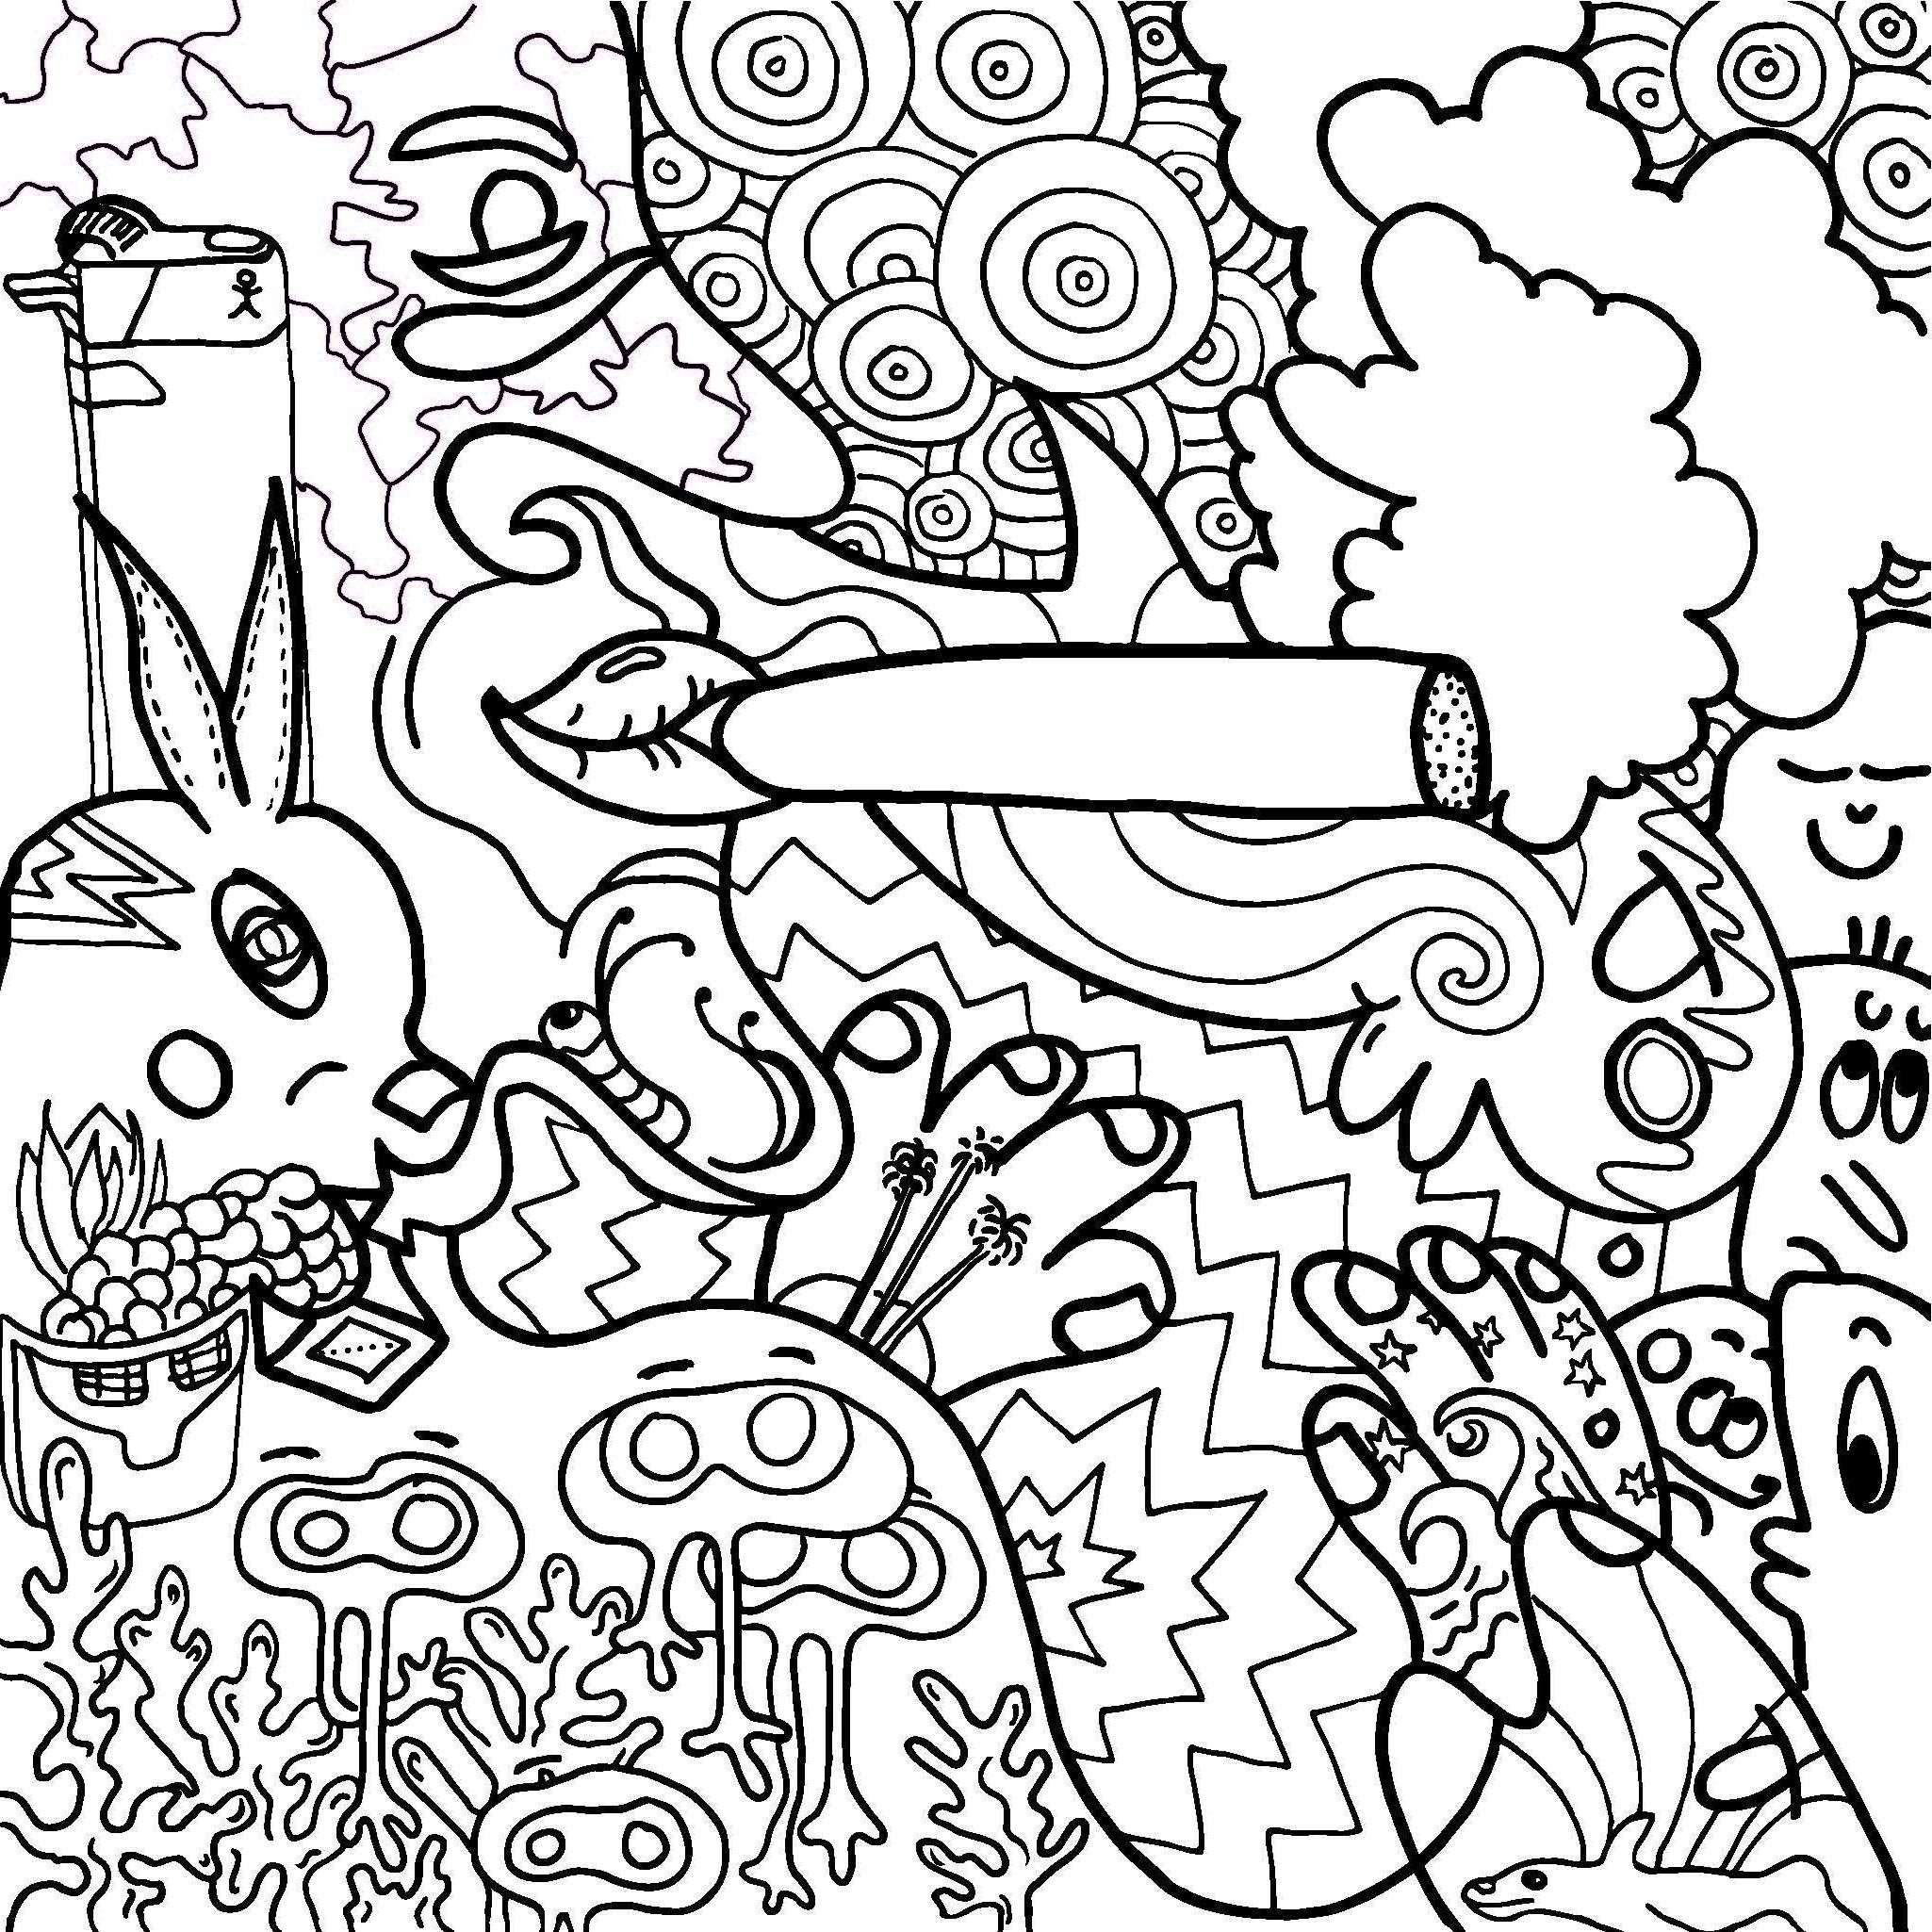 Hippy Coloring Pages - Coloring Home